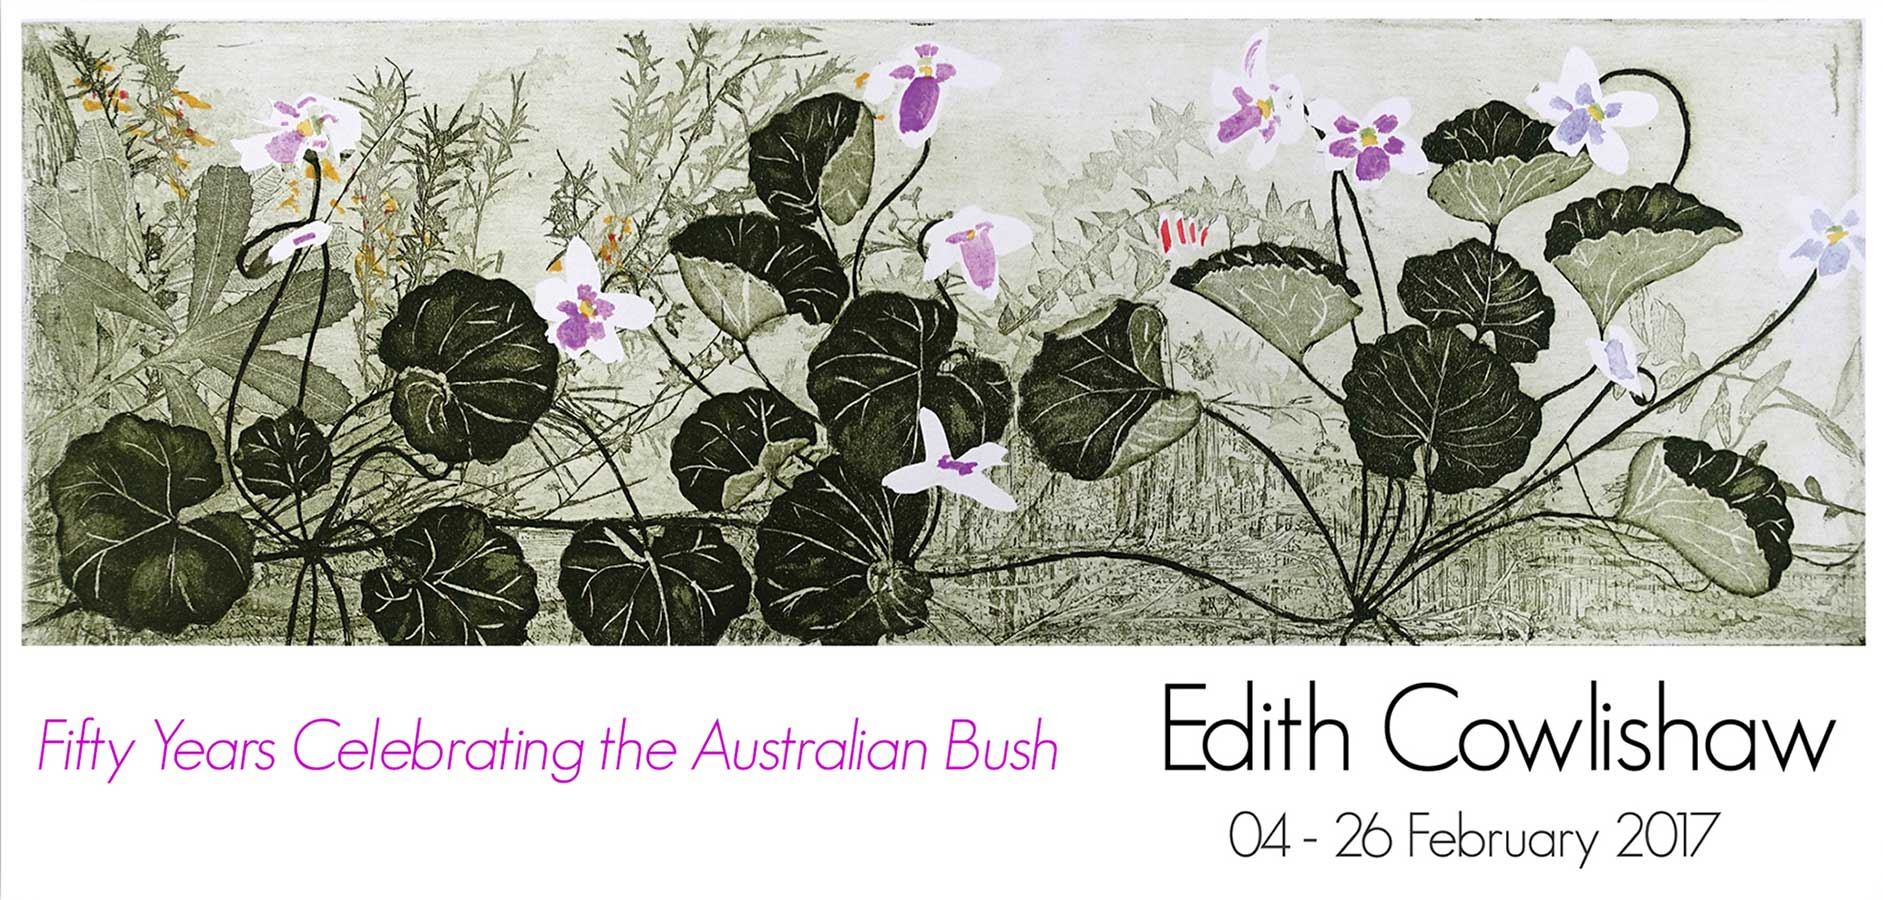 Artsite Gallery Exhibition. Edith Cowlishaw: Fifty Years Celebrating the Australian Bush. Solo Exhibition, Gallery_1, 04-26 February 2017